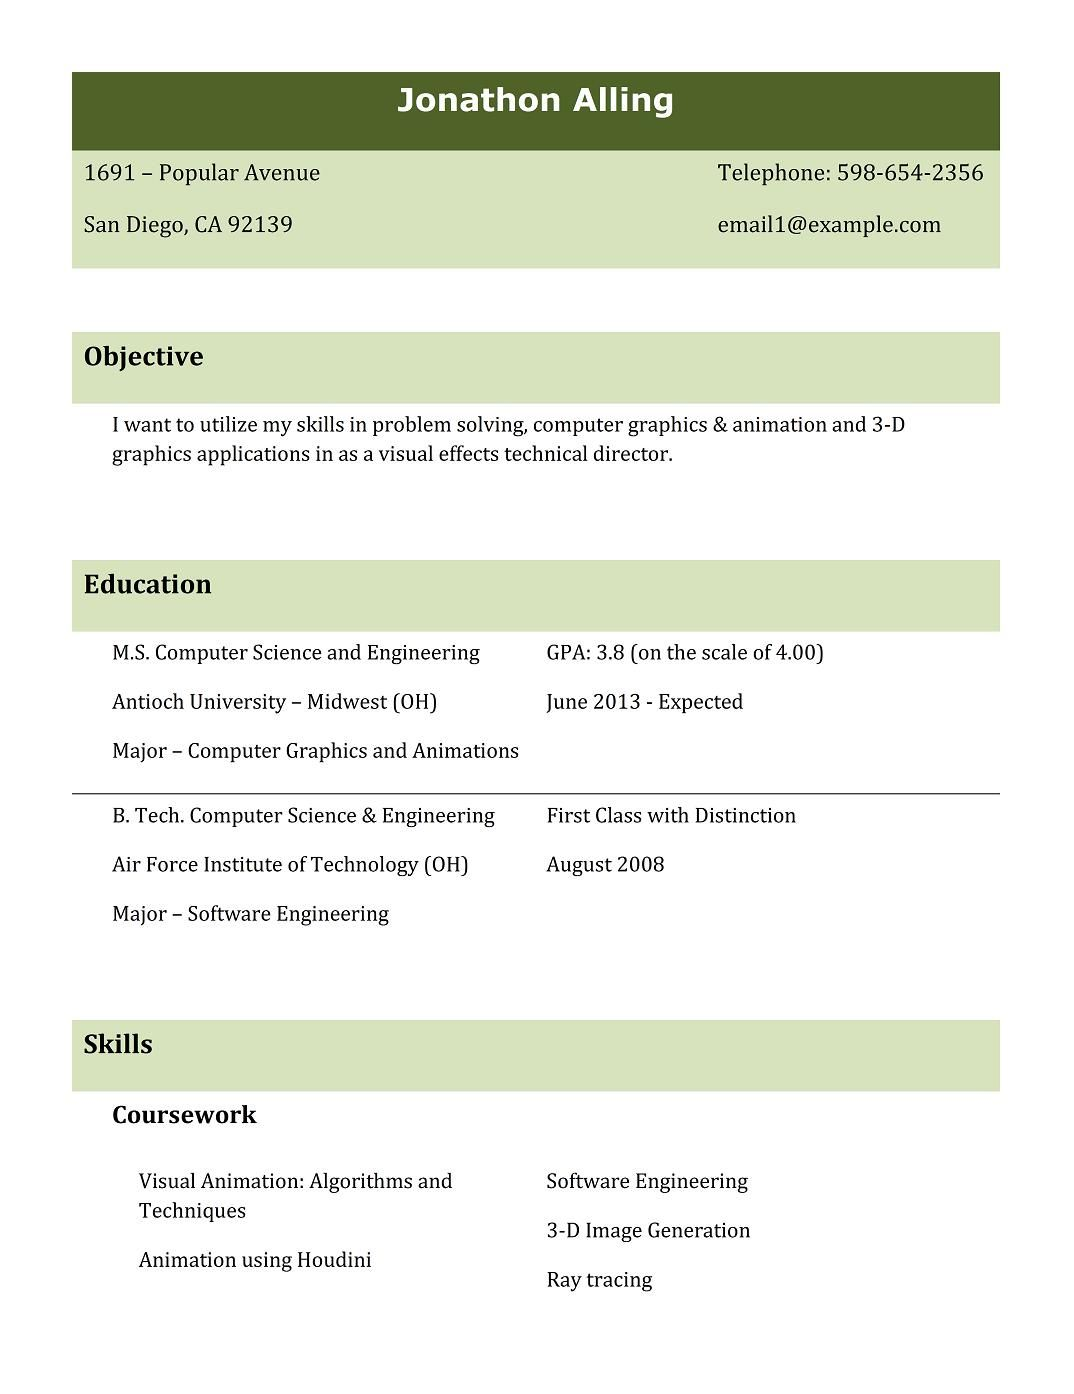 Resume Types Formats Types Resumes Formats Sample Best Professional Resume Templates